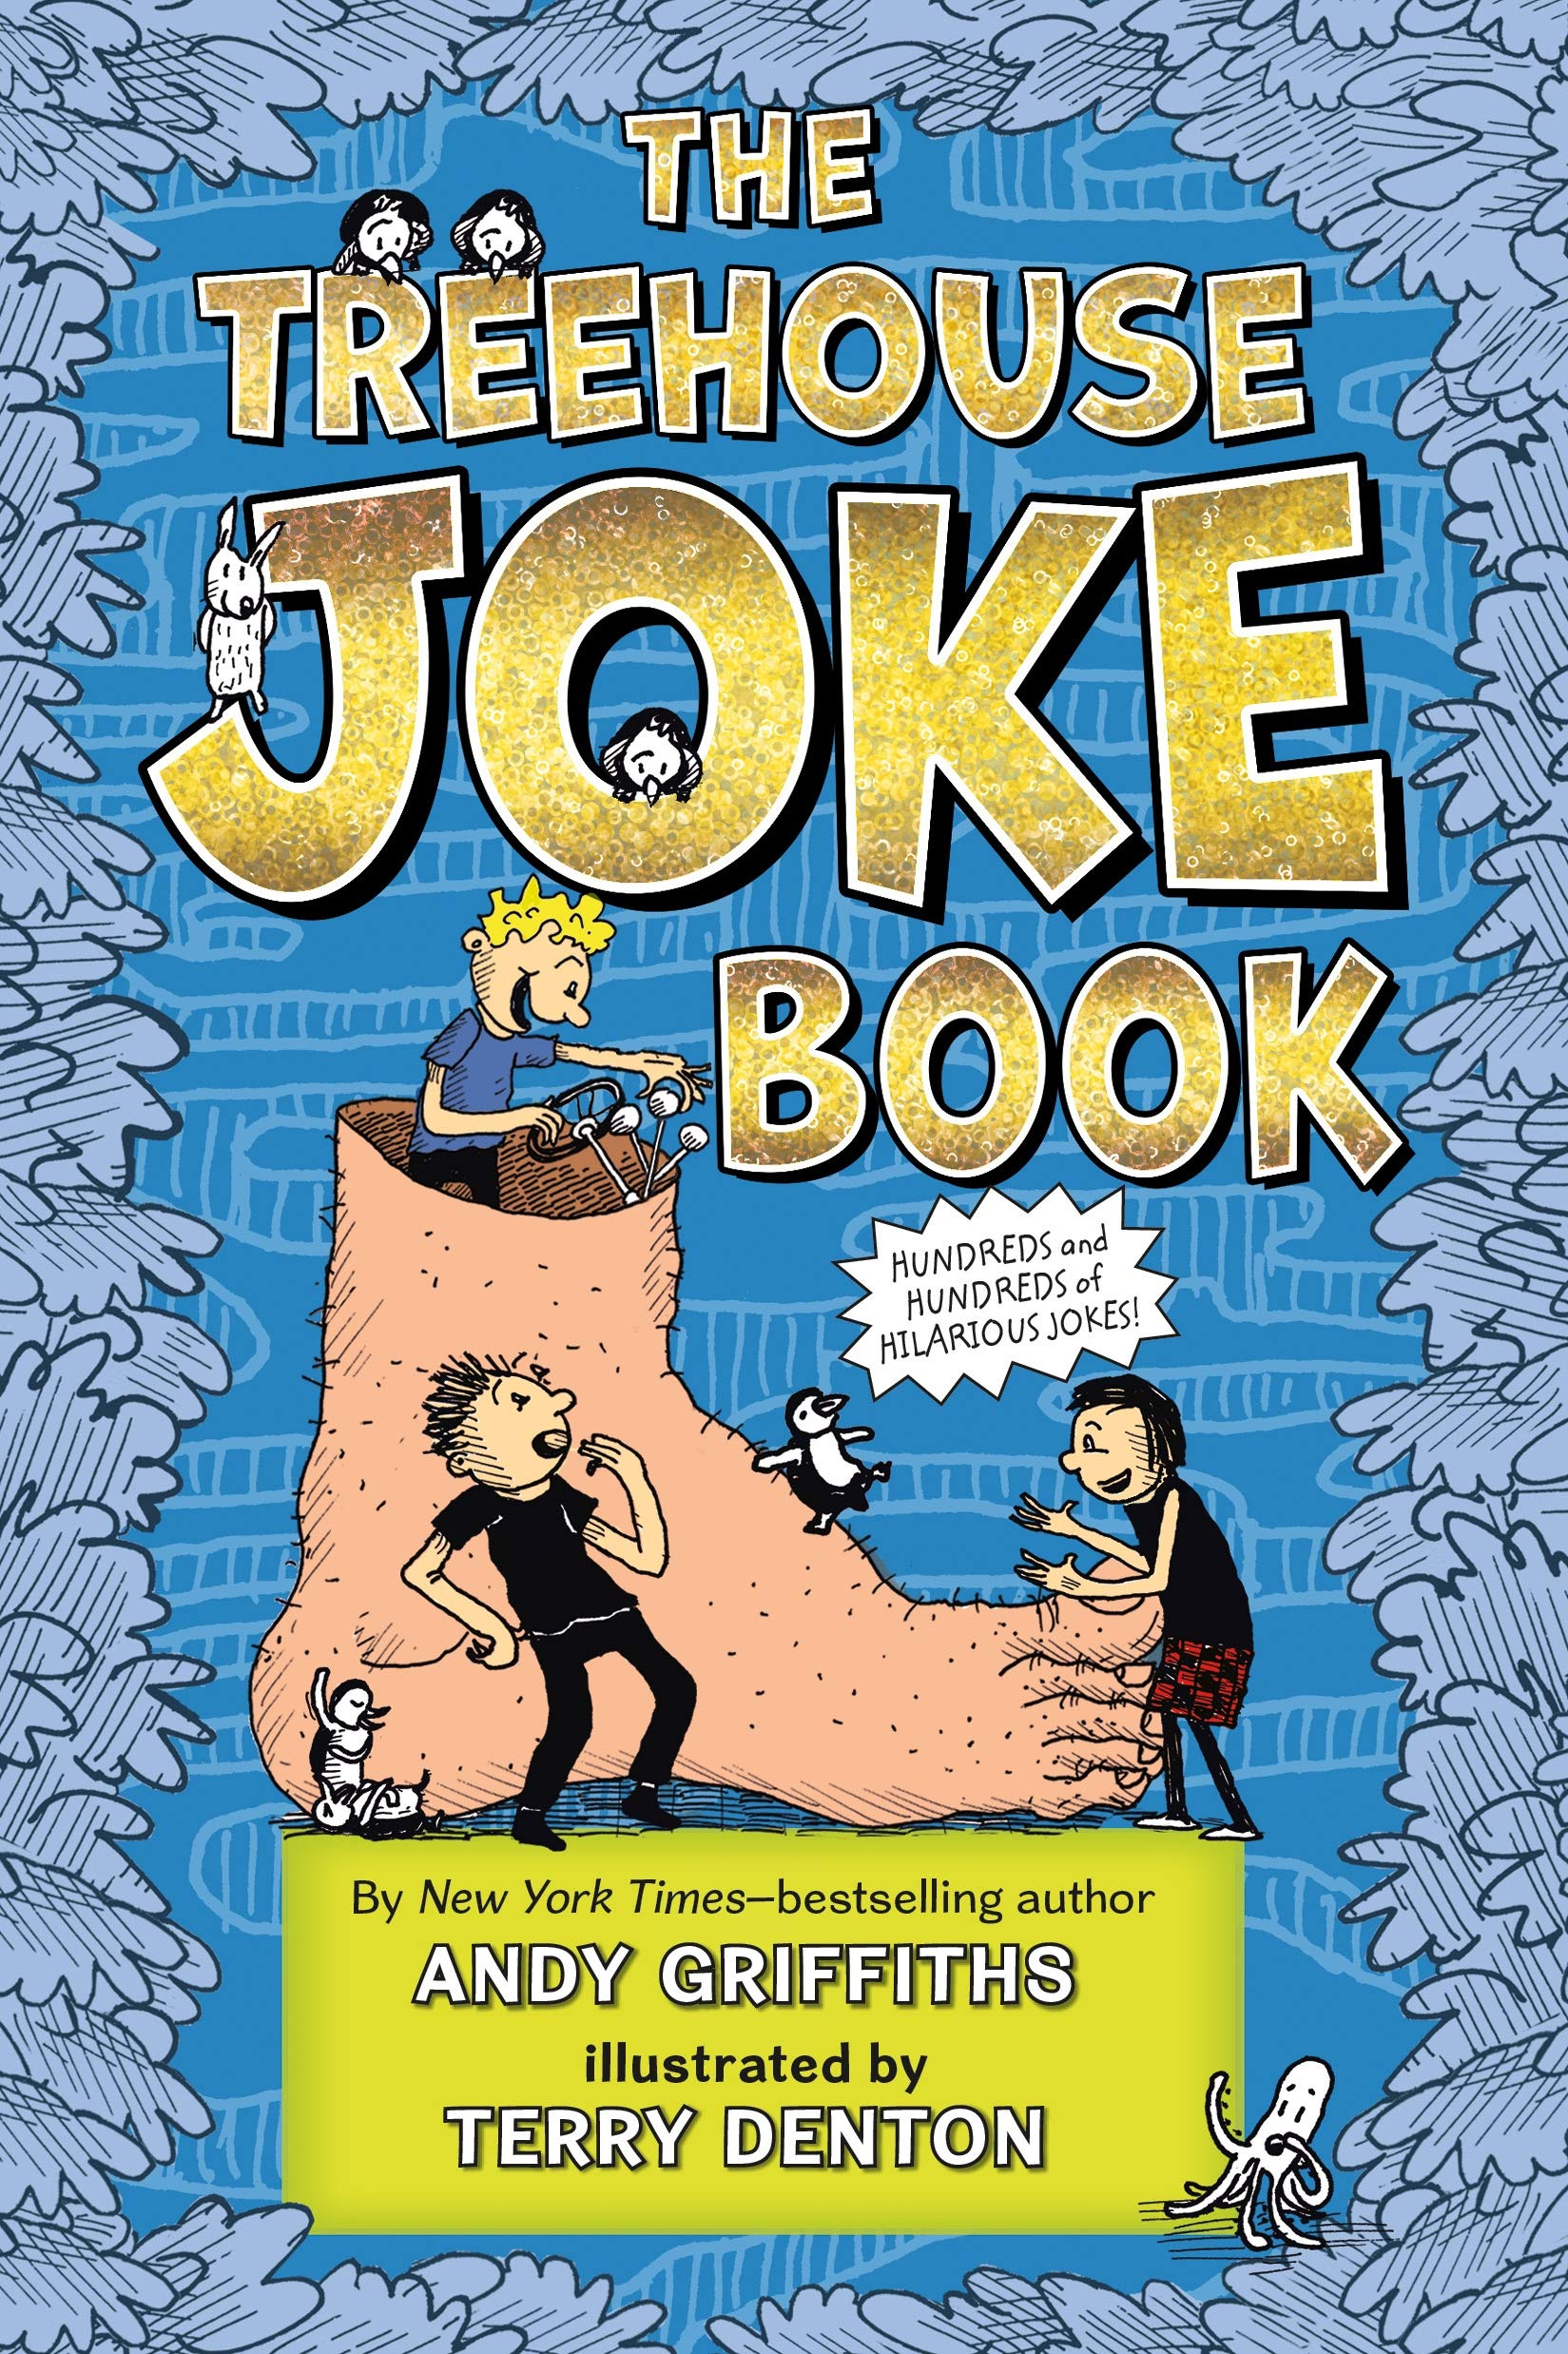 The Treehouse Joke Book (The Treehouse Books)